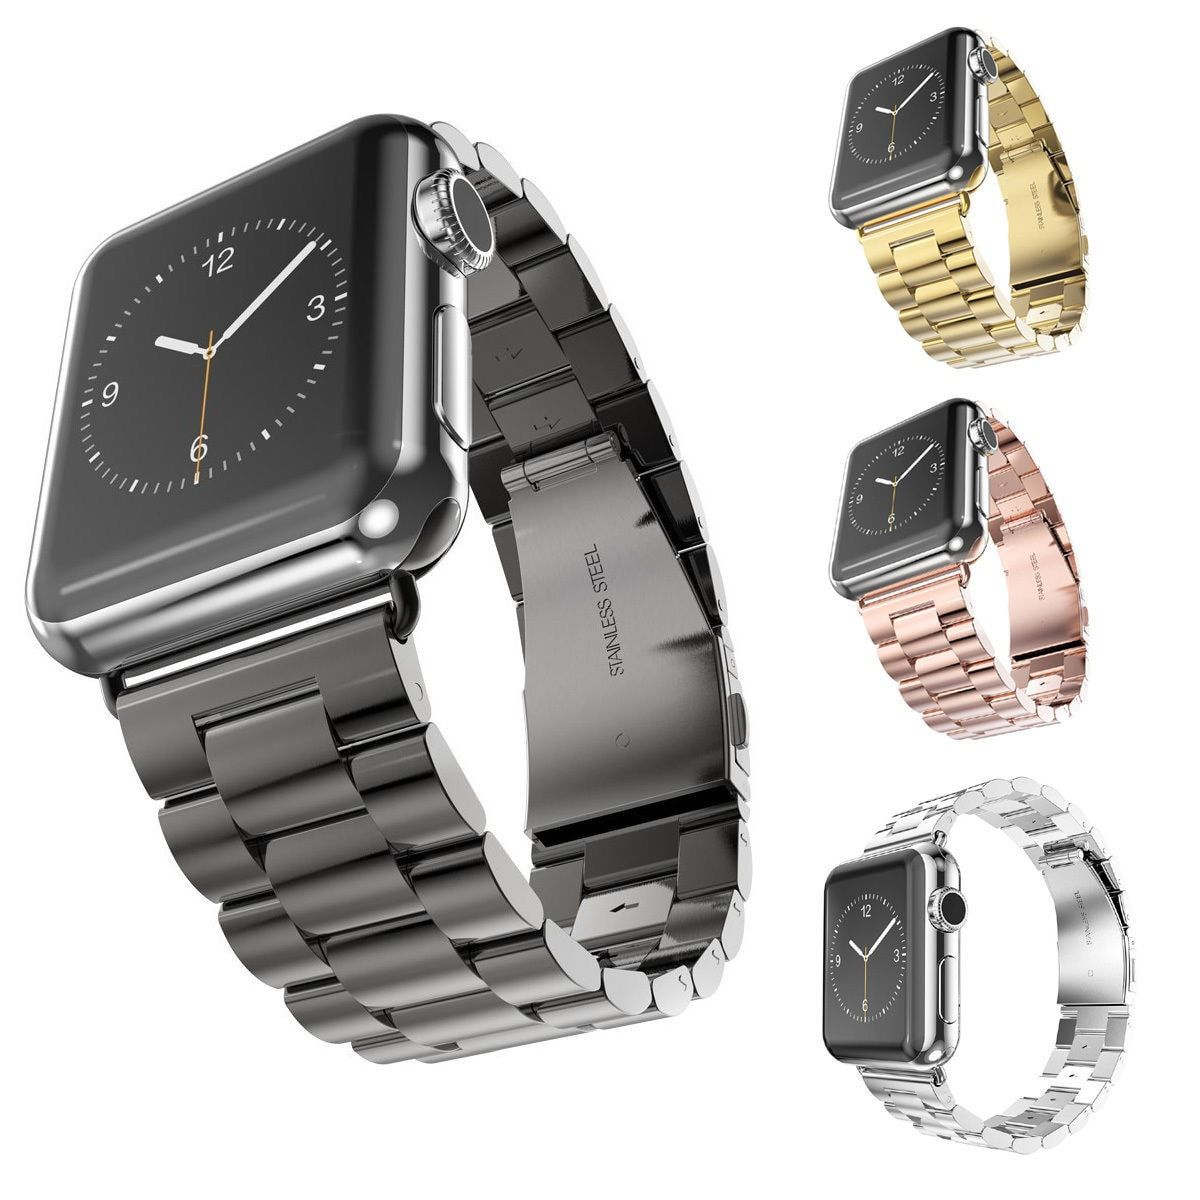 Stainless Steel Band With Clasp For Apple Watch Sport Edition